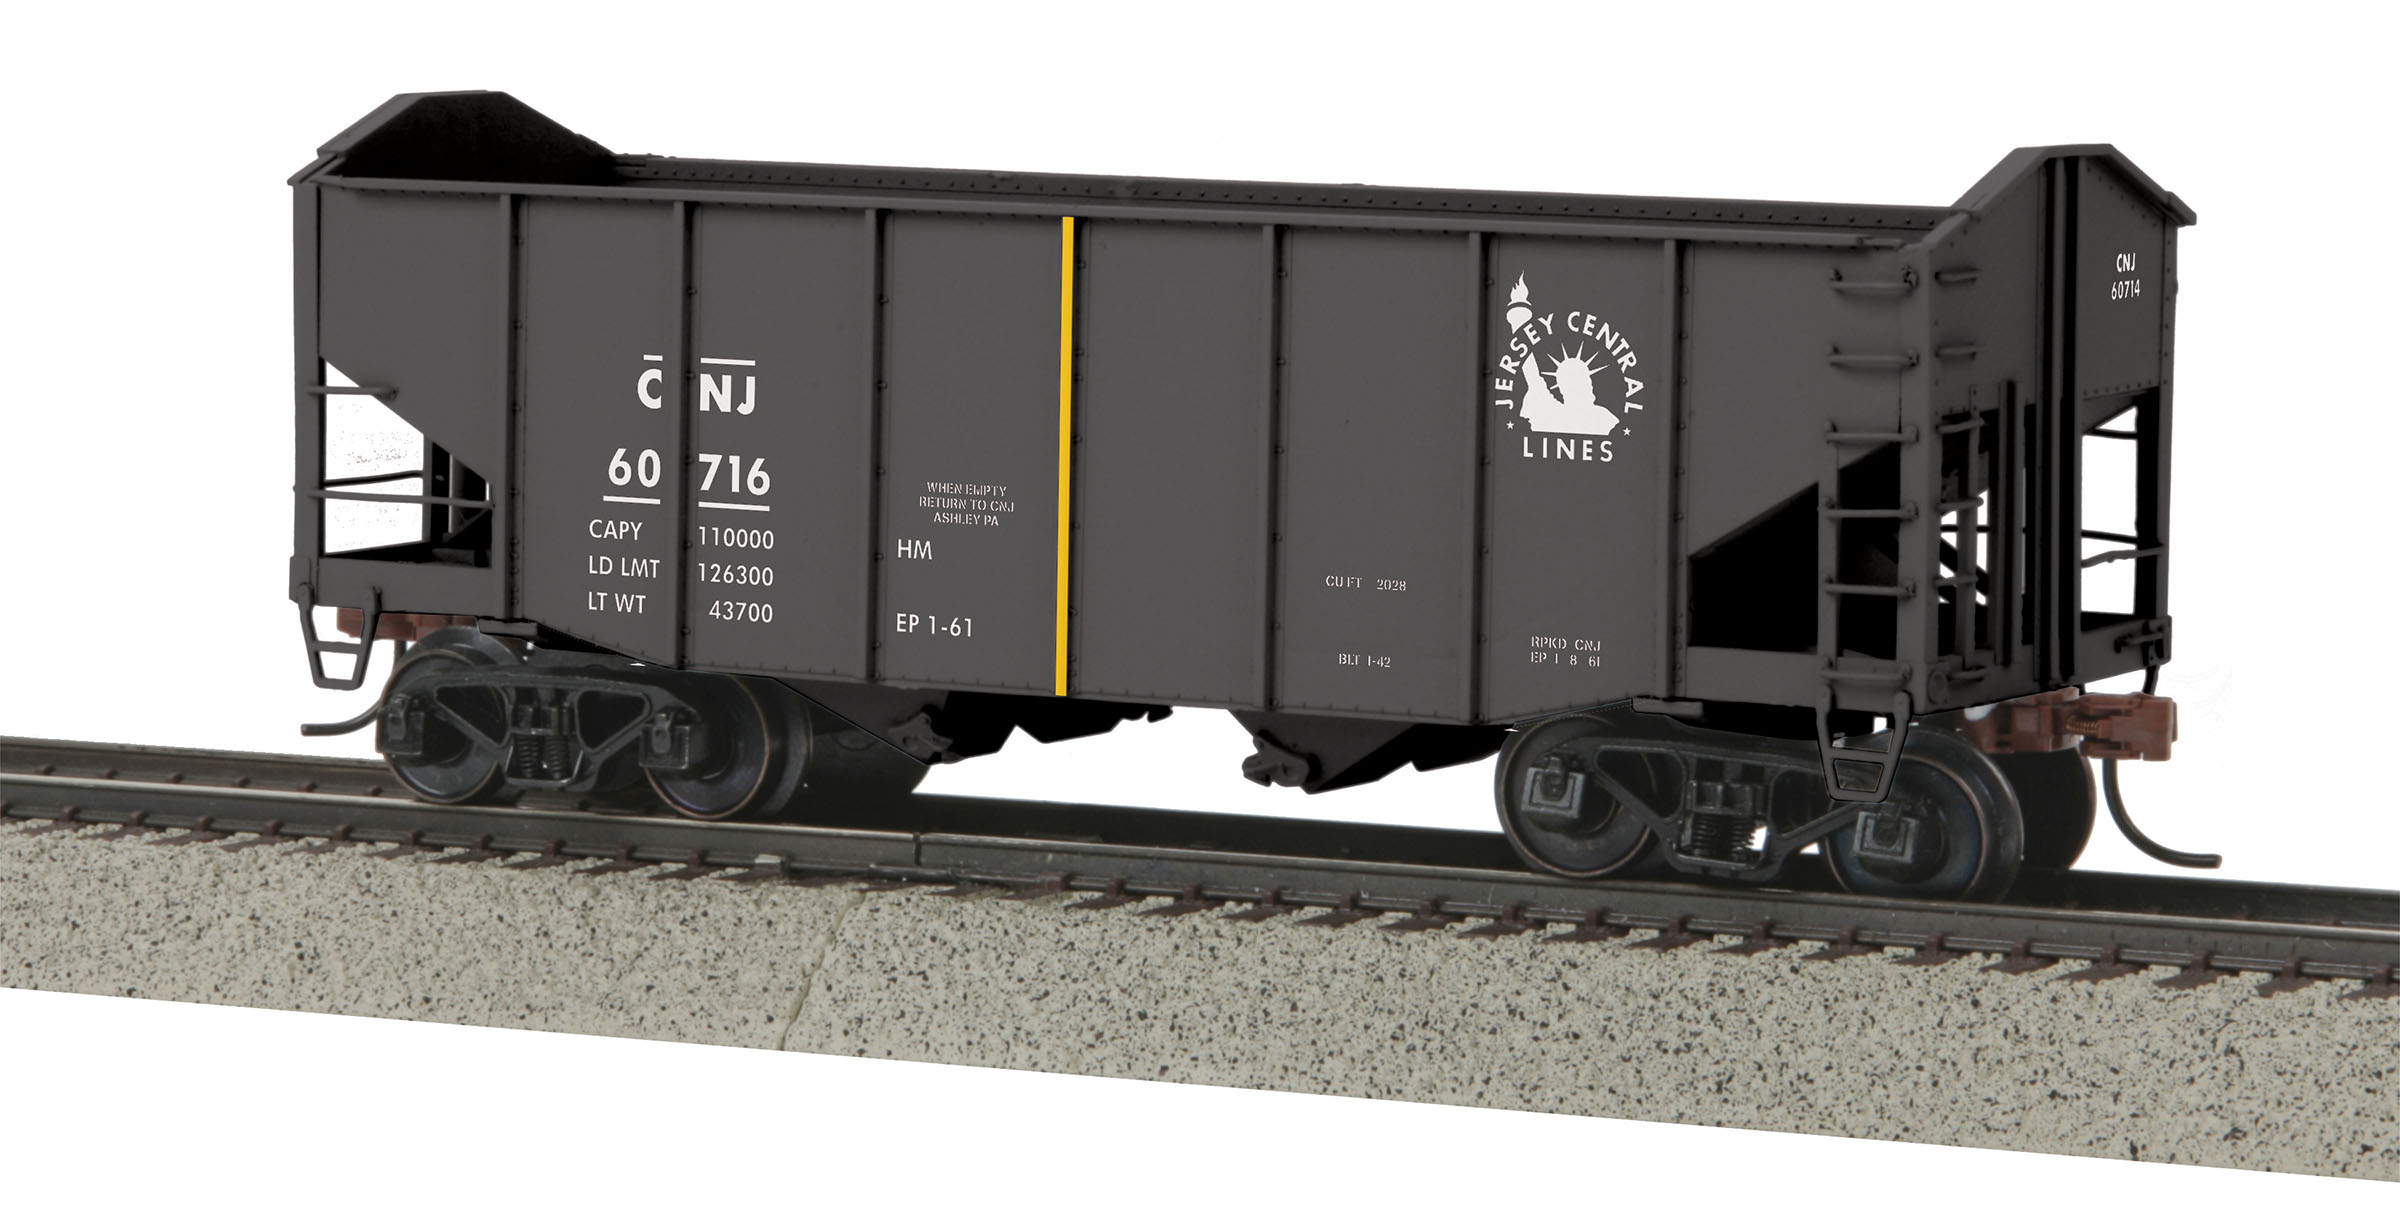 MTH 3575059 2Bay Fish Belly Hopper Hi-Rail Wheel CNJ #60716